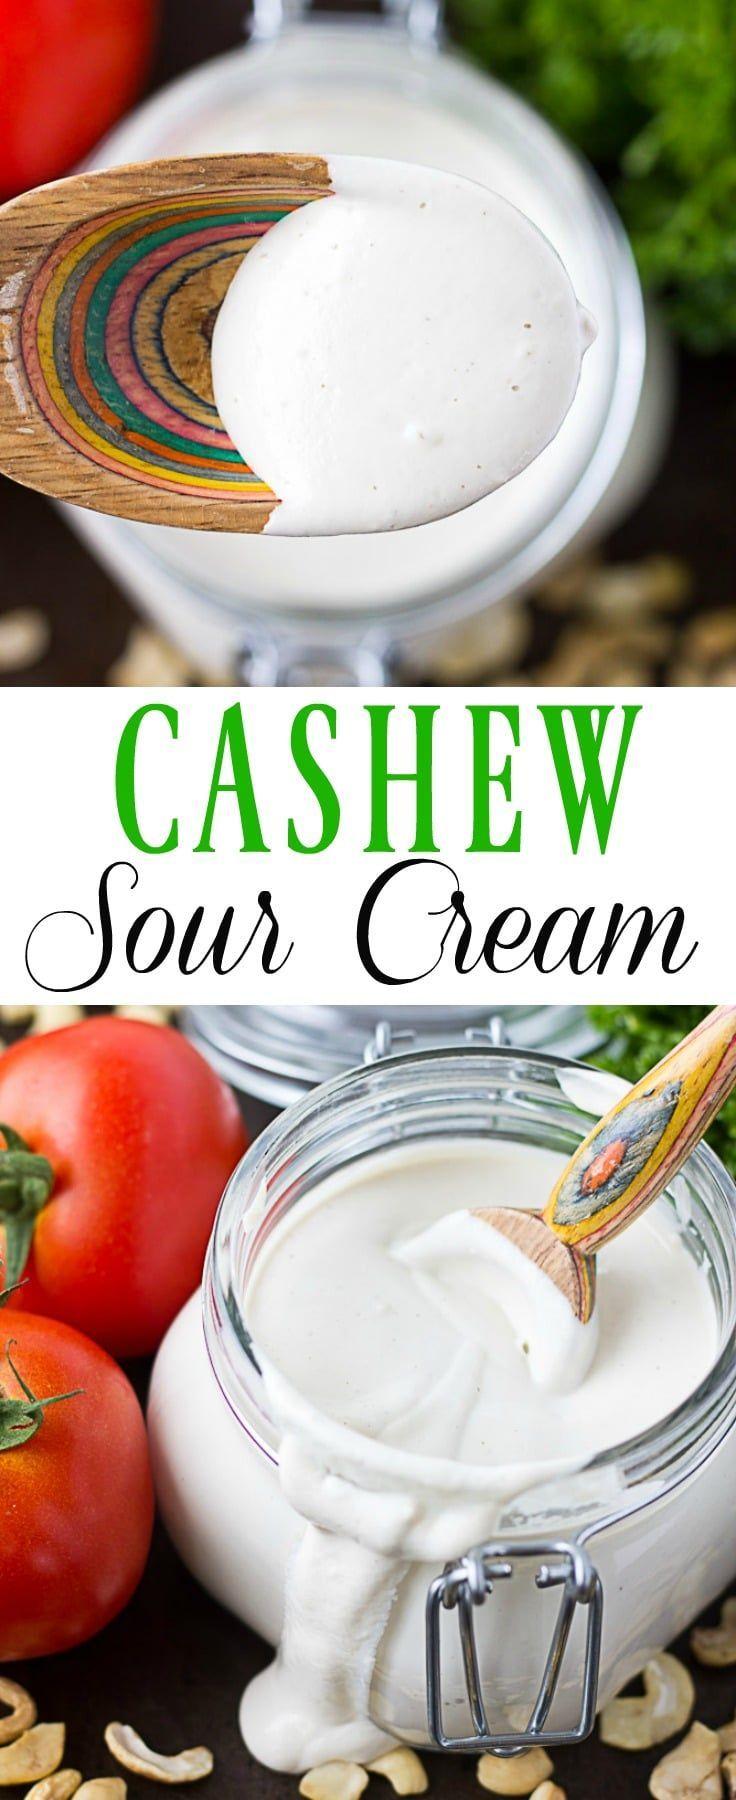 Cashew Sour Cream A Staple Vegan Recipe The Perfect Amount Of Sour And Deliciously Rich And Creamy Vegan V Cashew Sour Cream Vegan Recipes Vegan Sauces